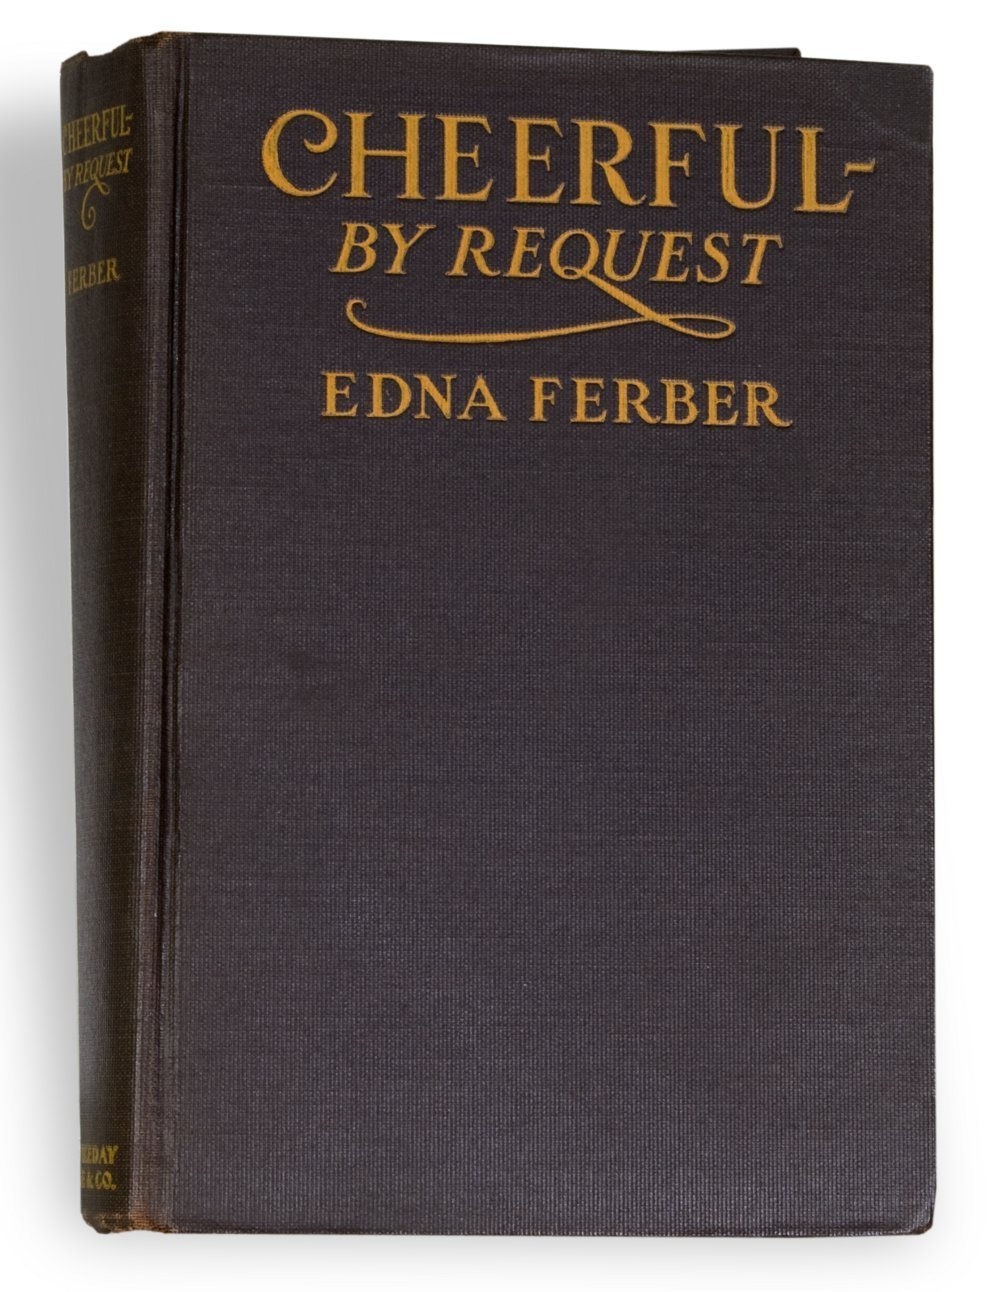 Edna Ferber inscribed book - 1